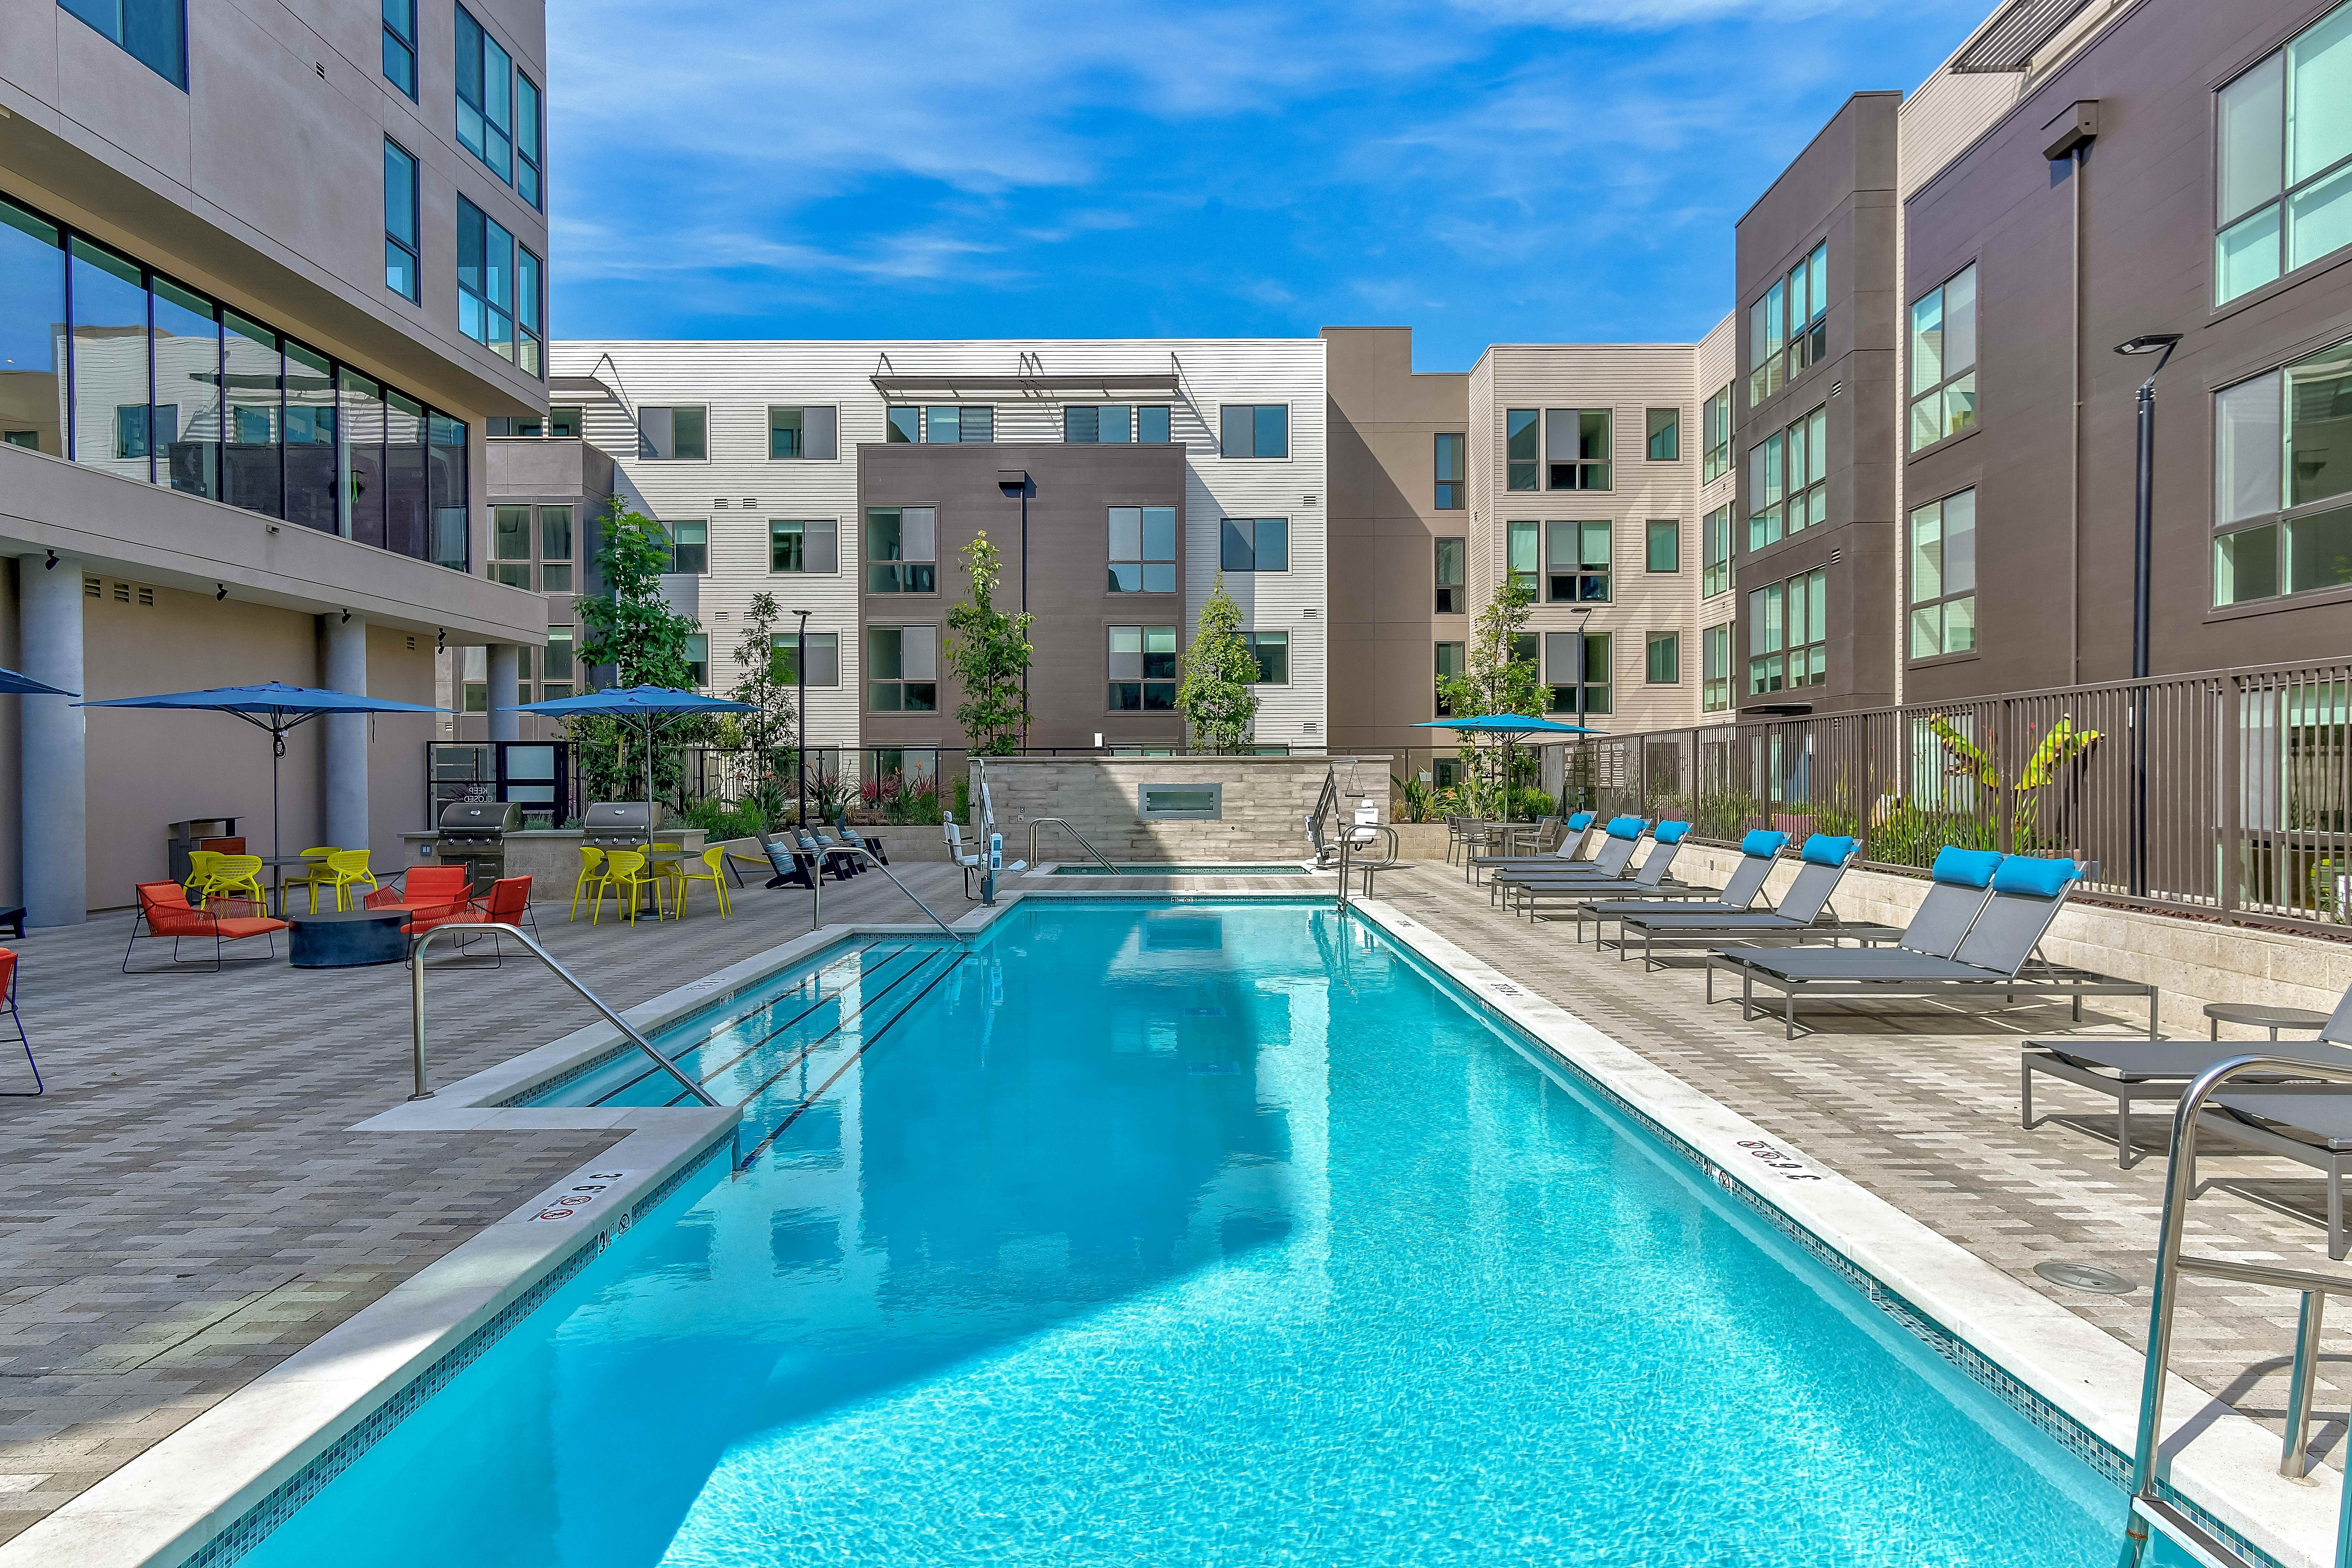 Apartments Near Foothill Novo for Foothill College Students in Los Altos Hills, CA